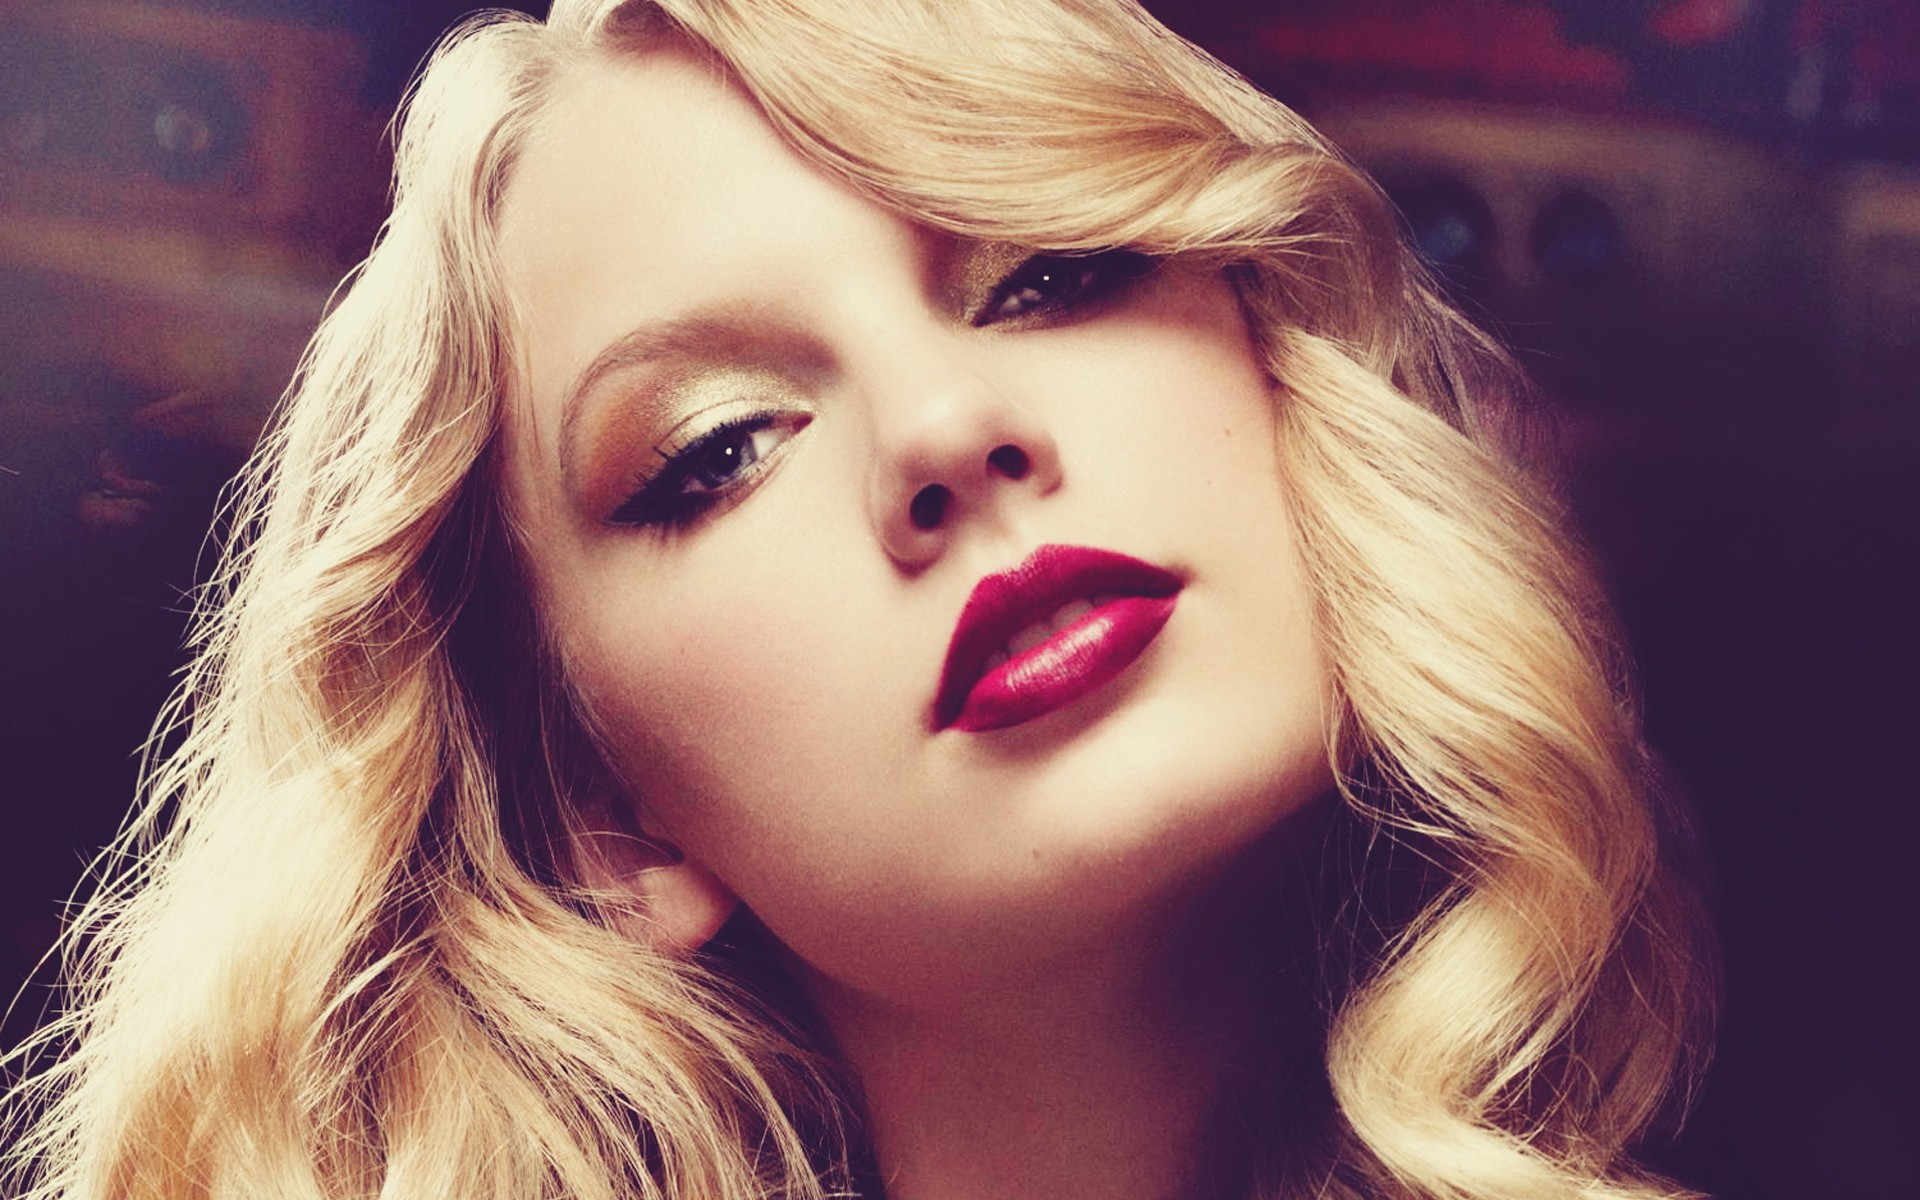 Taylor Swift Beautiful Images: Taylor Swift Wallpapers, Pictures, Images